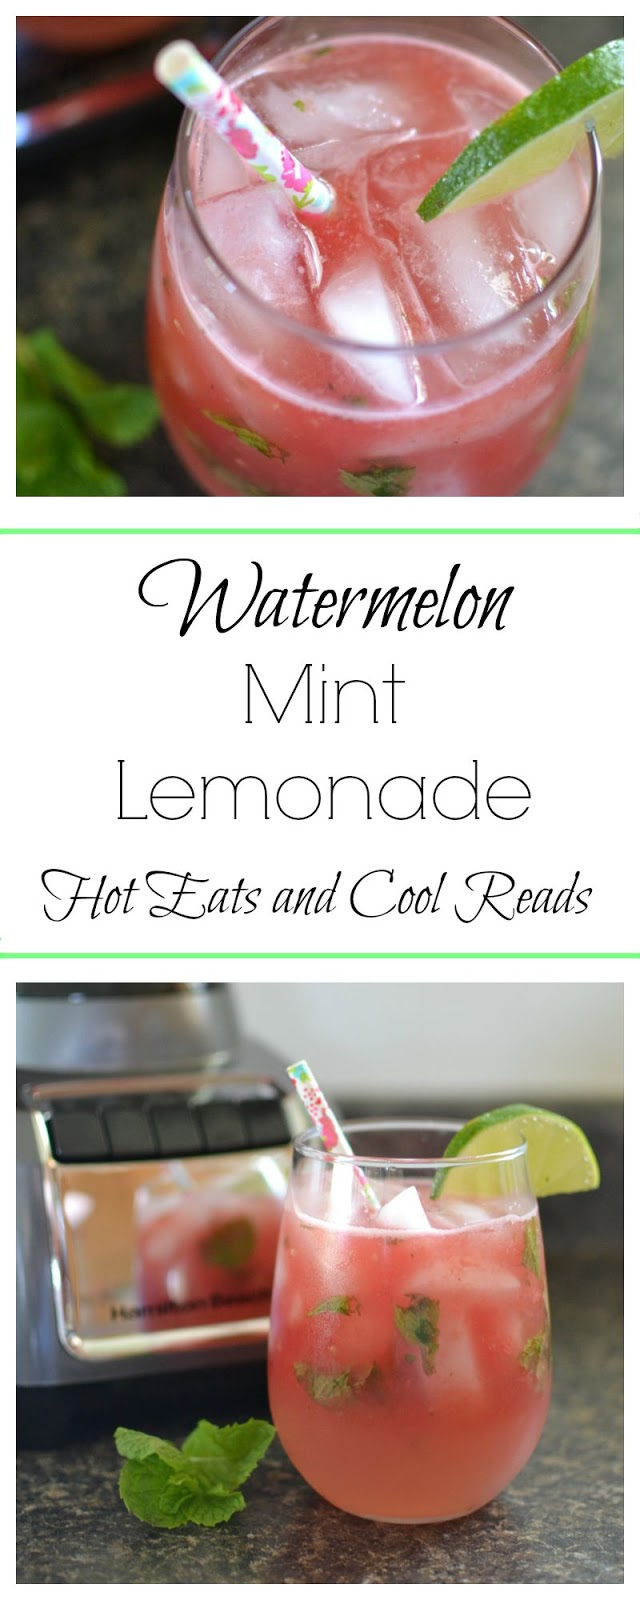 Eats and Cool Reads: Watermelon Mint Lemonade Recipe plus Giveaway